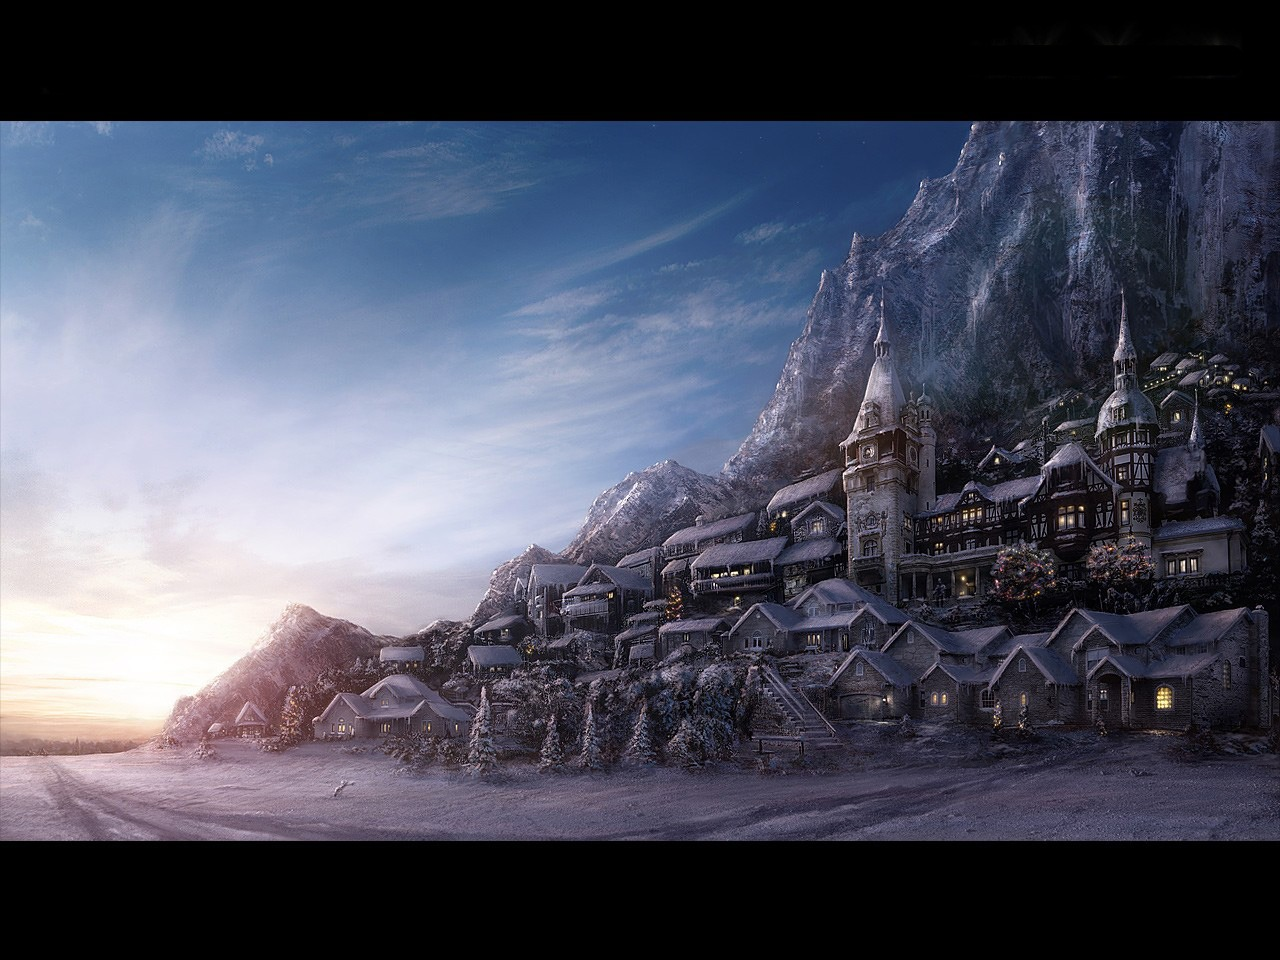 Fantasy town wallpapers 12064 1280x960